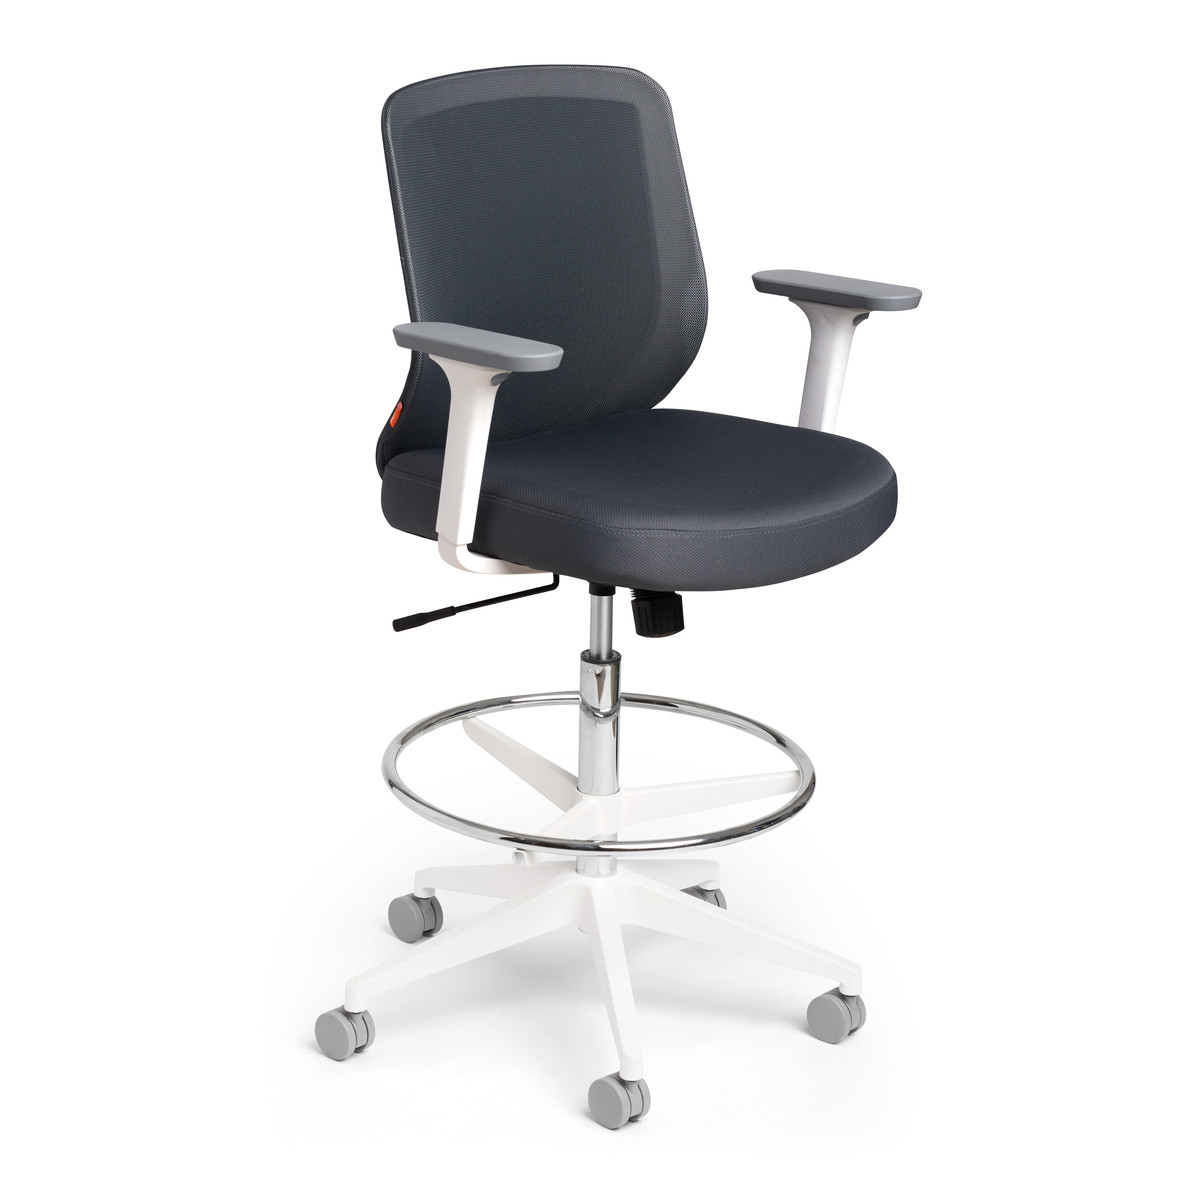 office drafting chair. Dark Gray Max Drafting Chair, Mid Back, White Frame,Dark Gray,hi. Loading Zoom Office Chair R